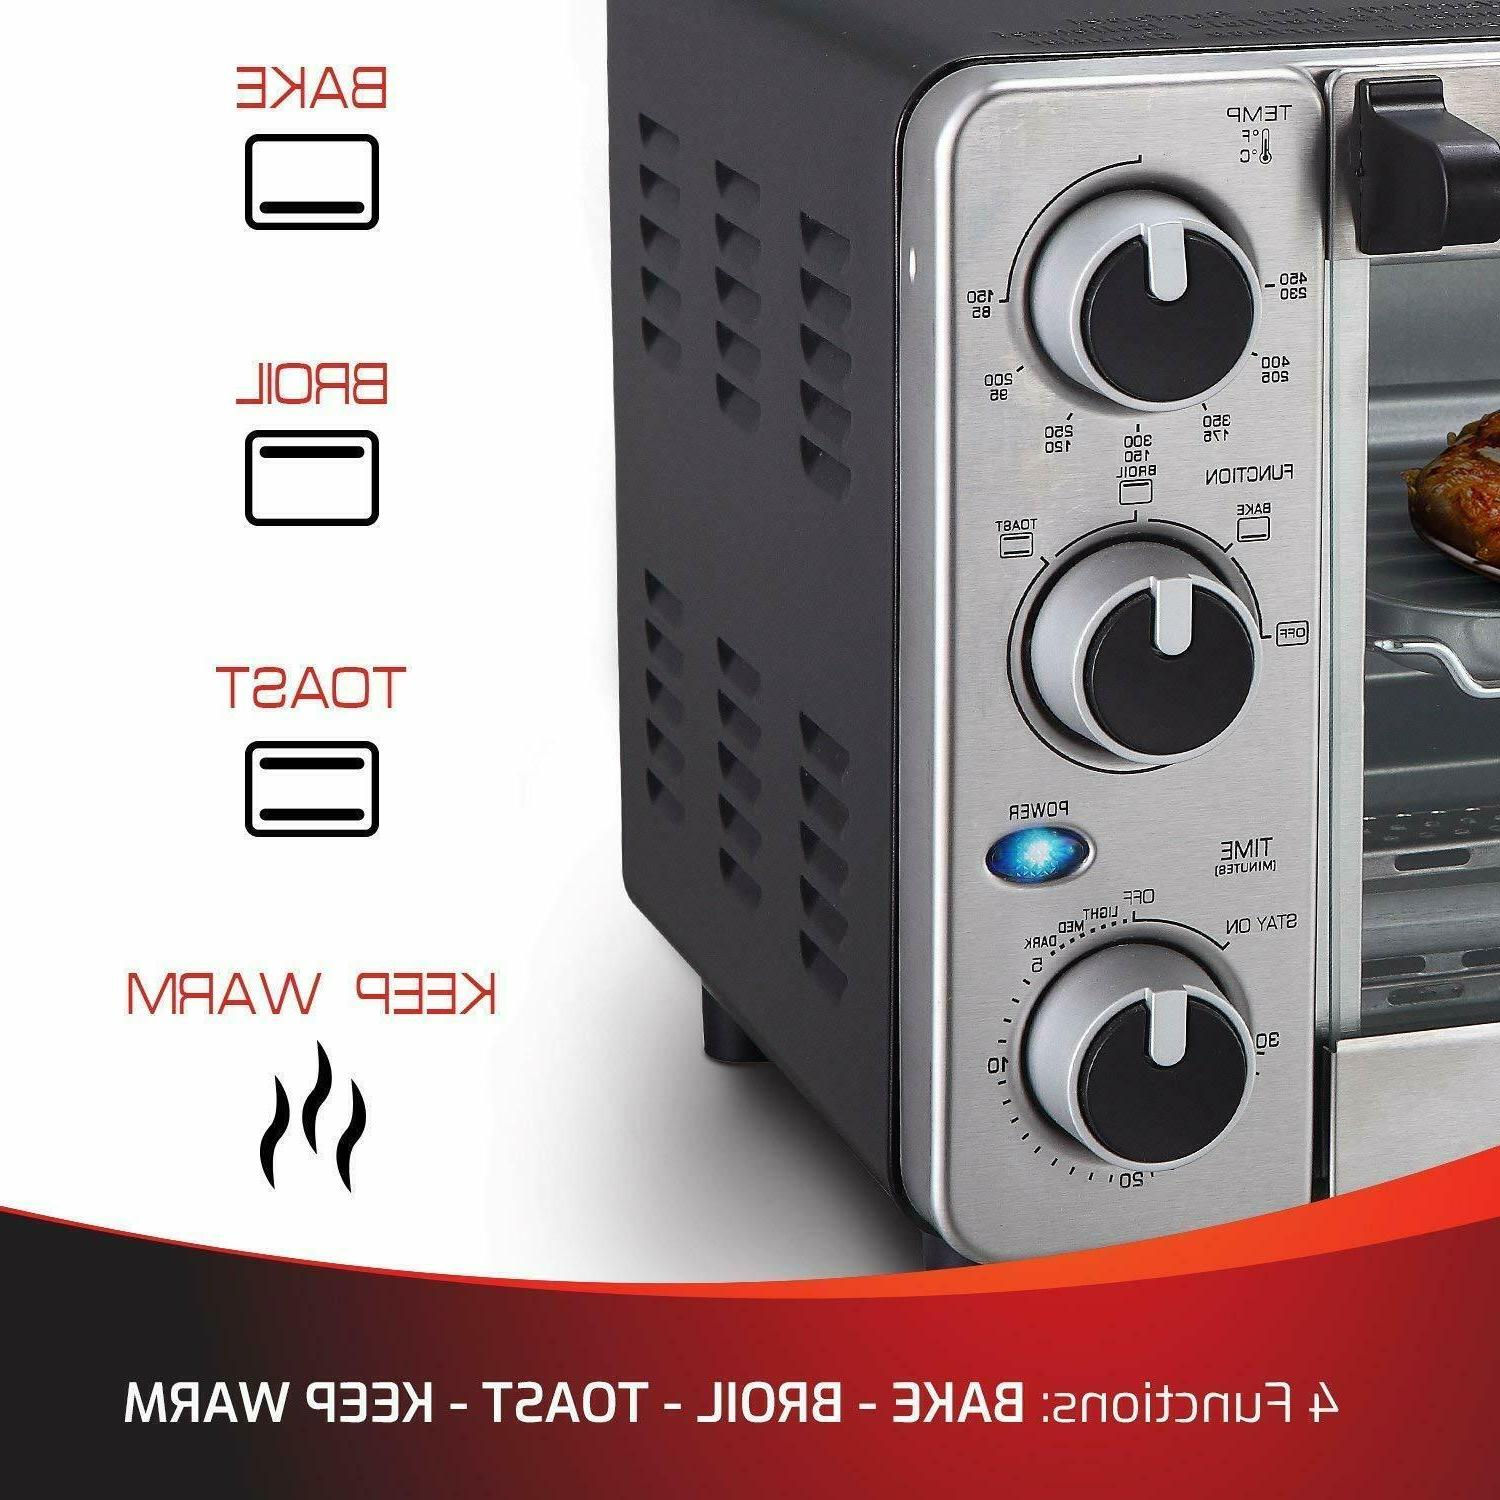 Toaster Oven With Toaster Oven Stainless